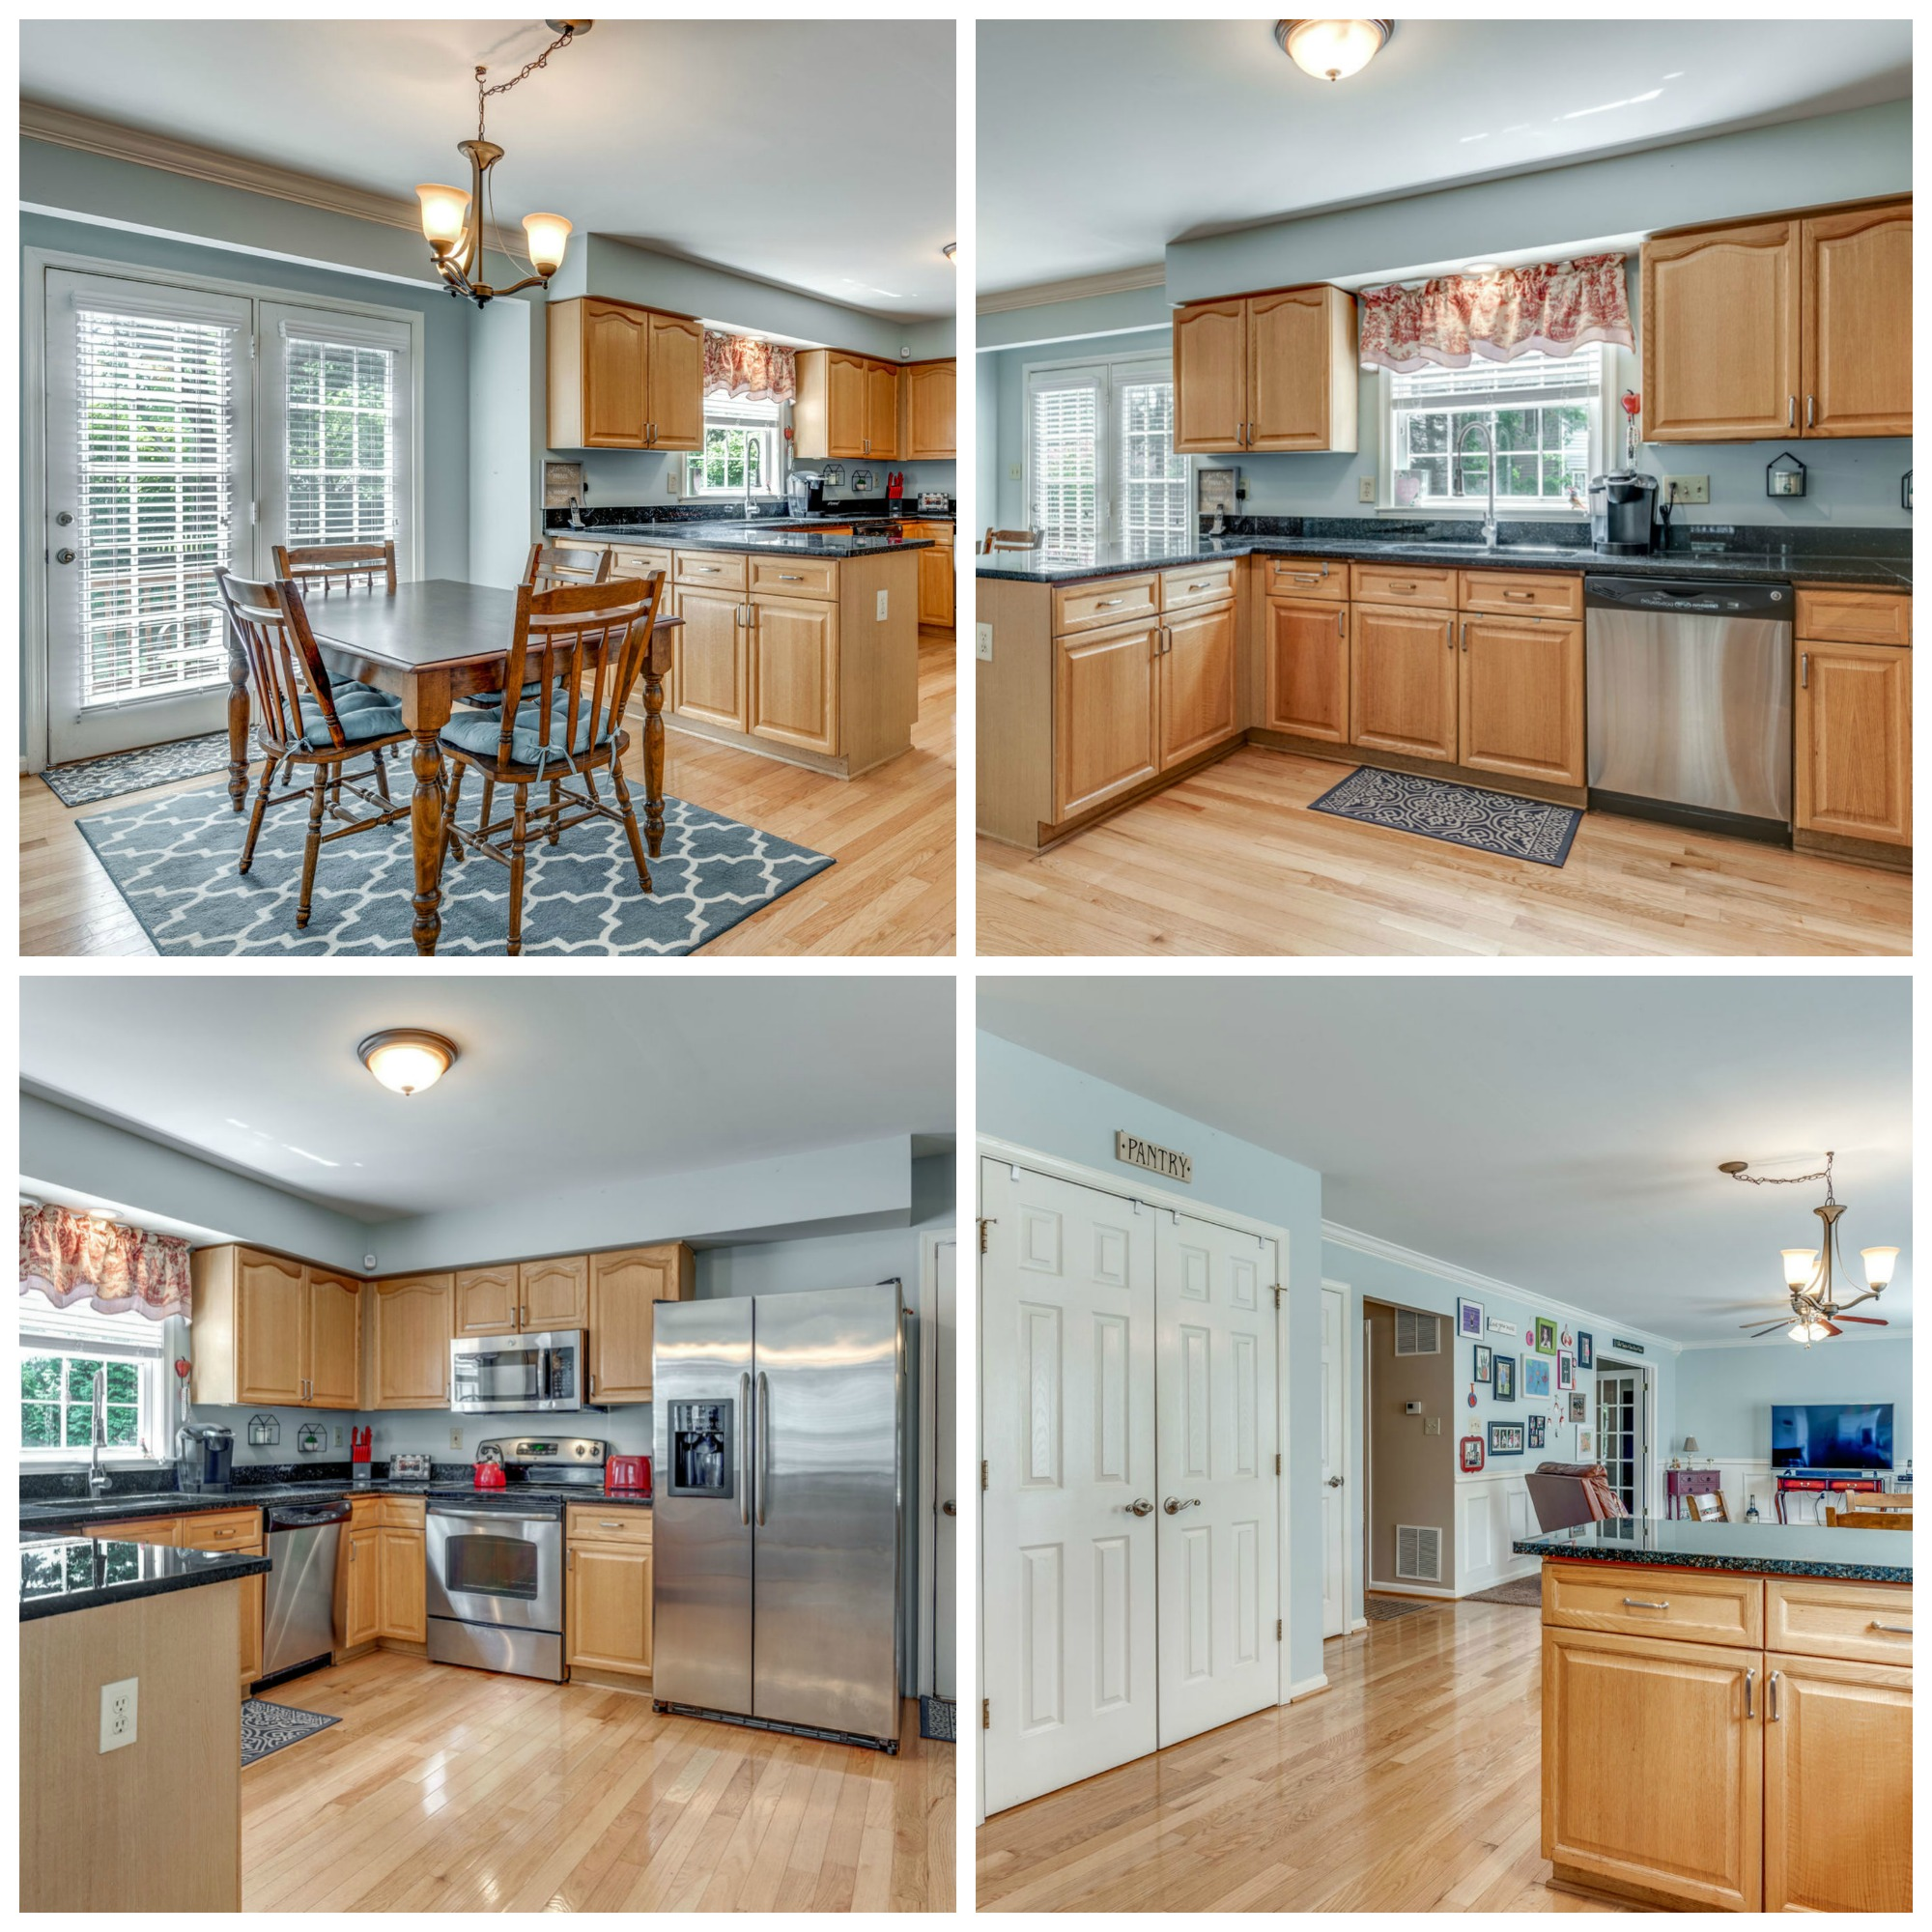 327 Old Waterford Rd NW, Leesburg - Kitchen